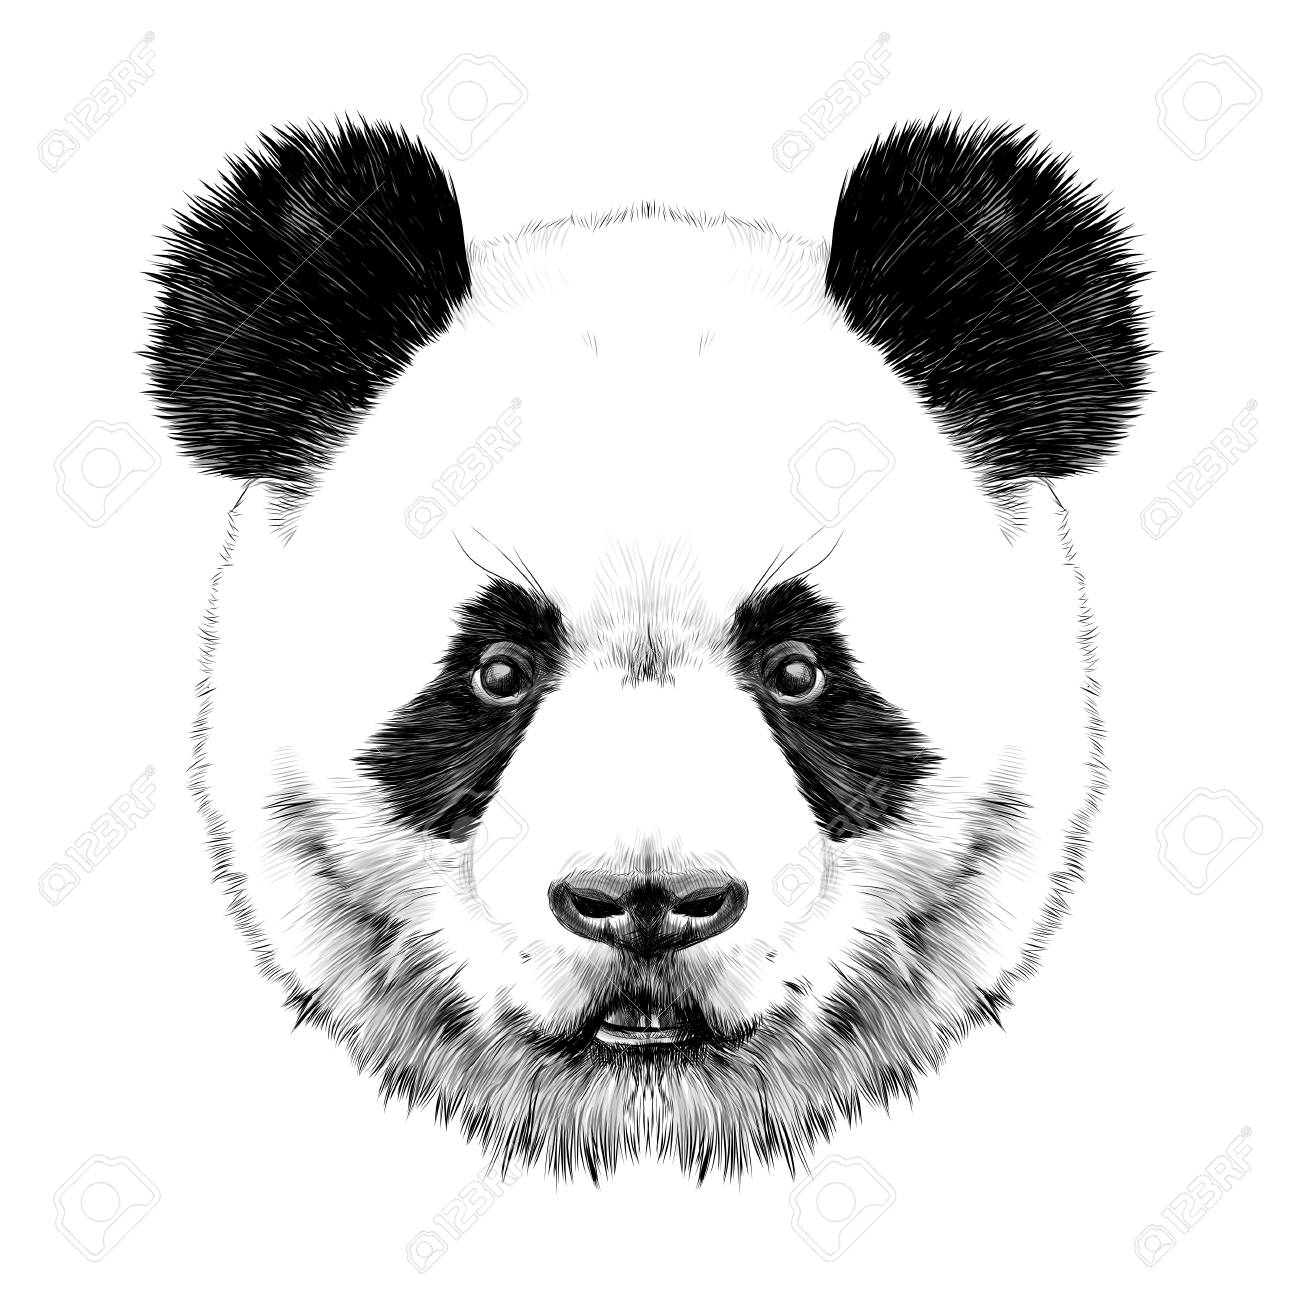 Panda Head Is Symmetrical Looks Right Sketch Vector Graphics